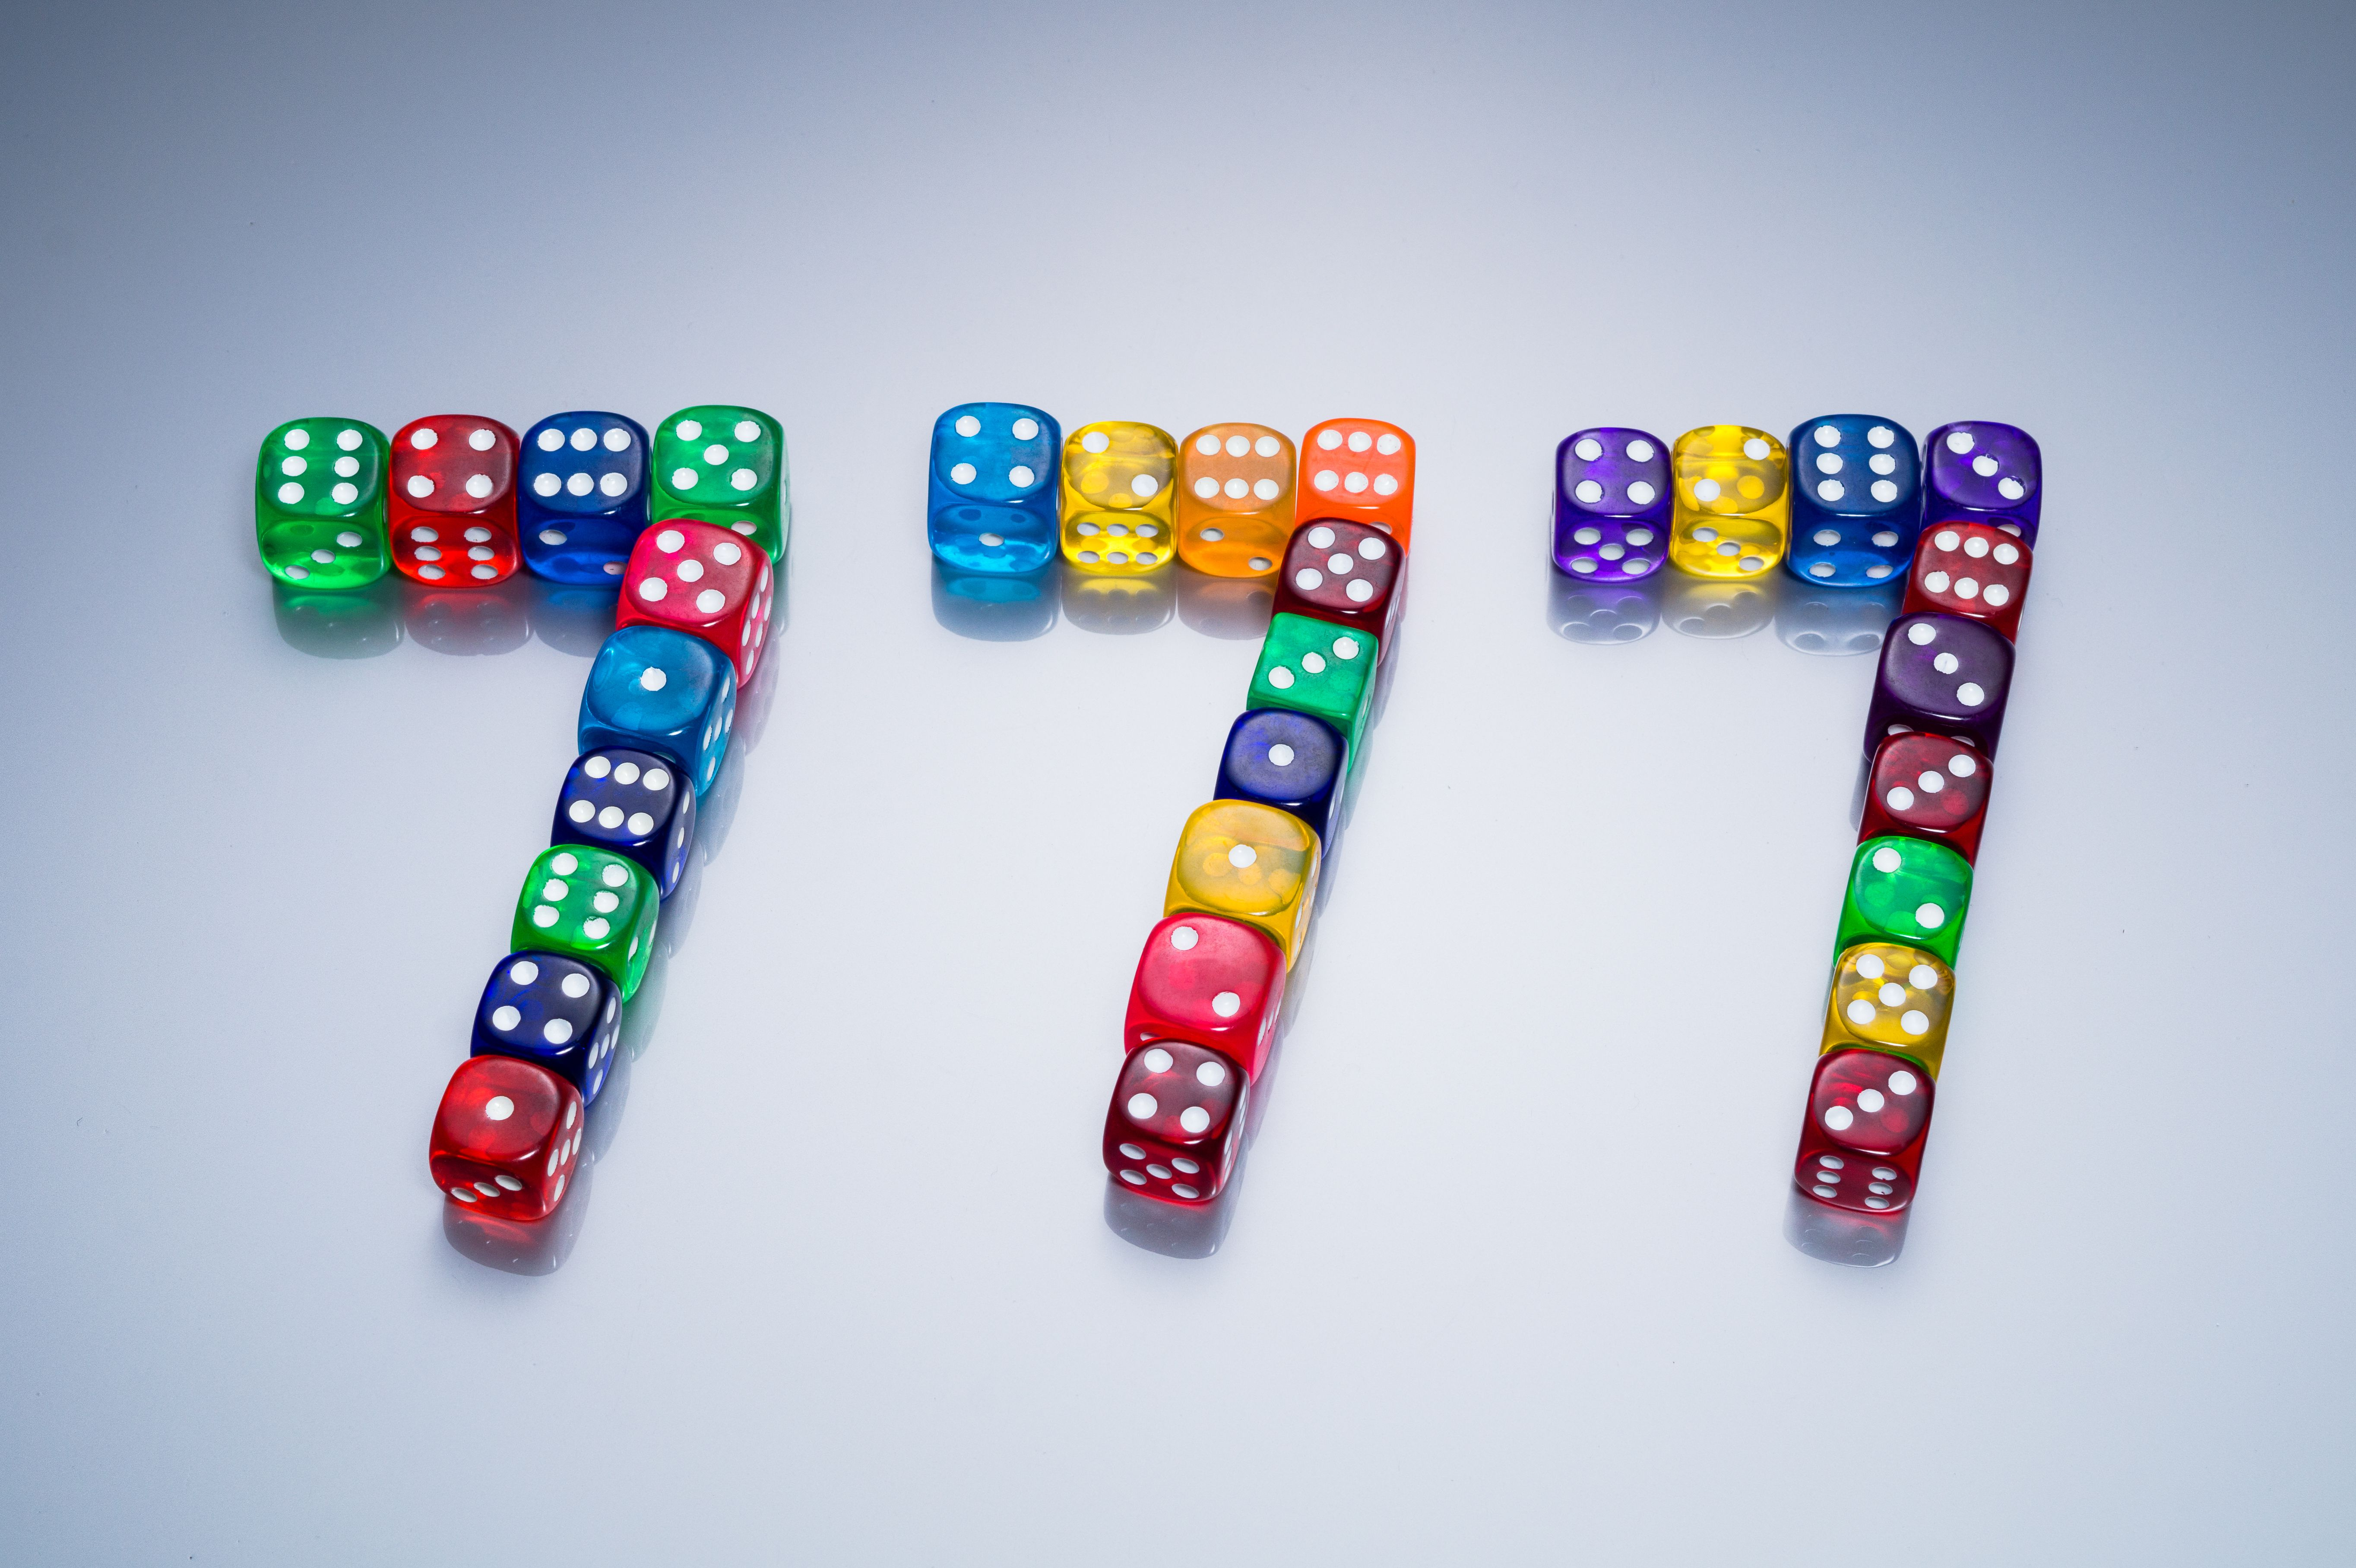 Slot Machine Lucky Triple 7 Consists of Colorful Dice